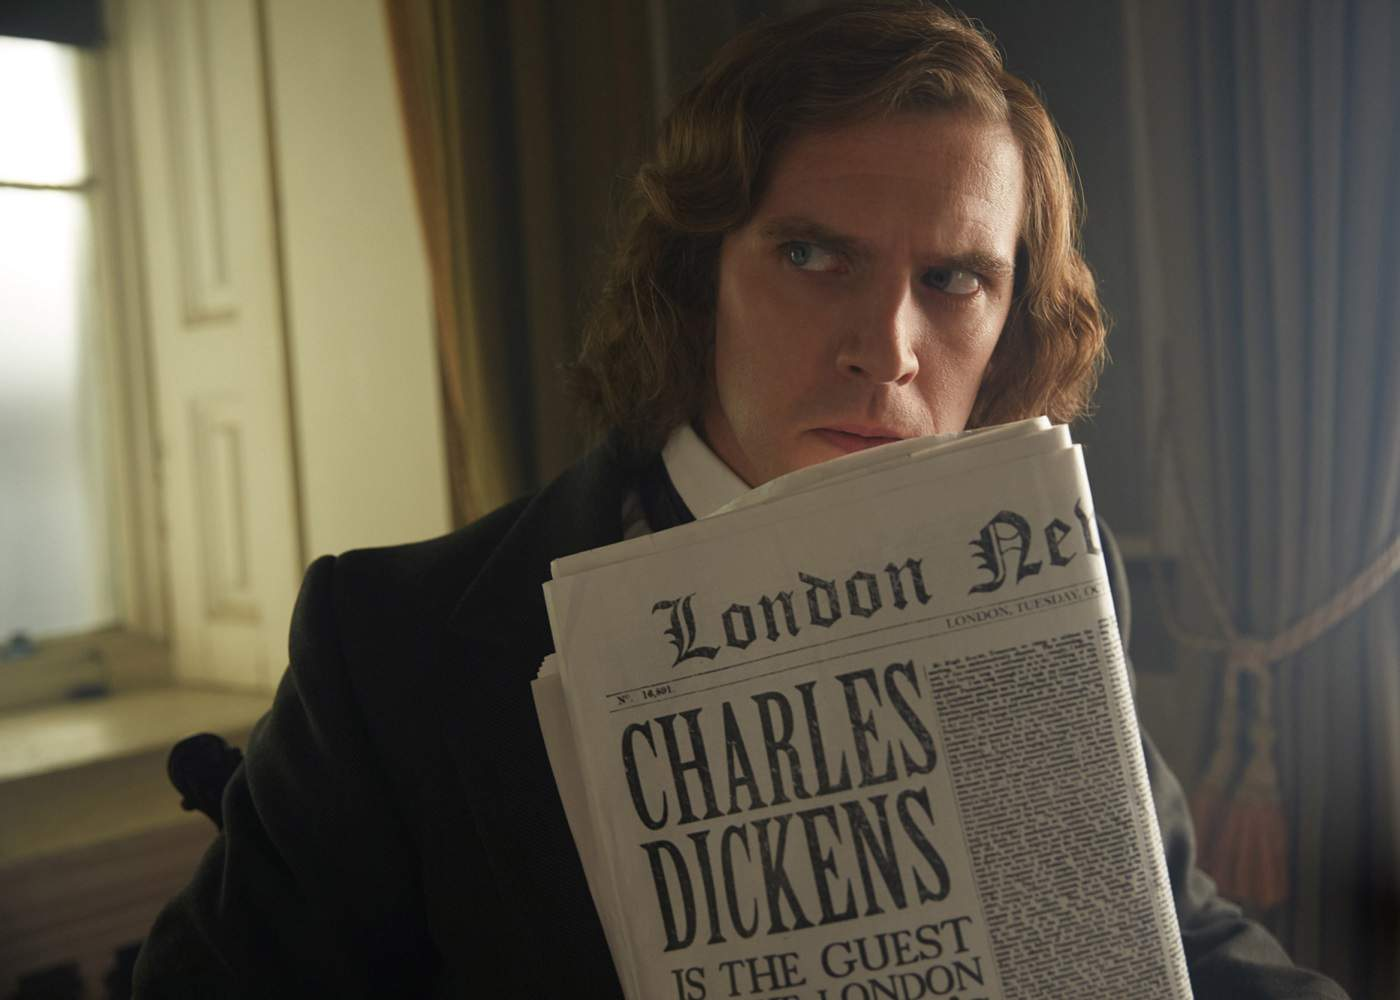 Dickens Summons Spirits in The Man Who Invented Christmas